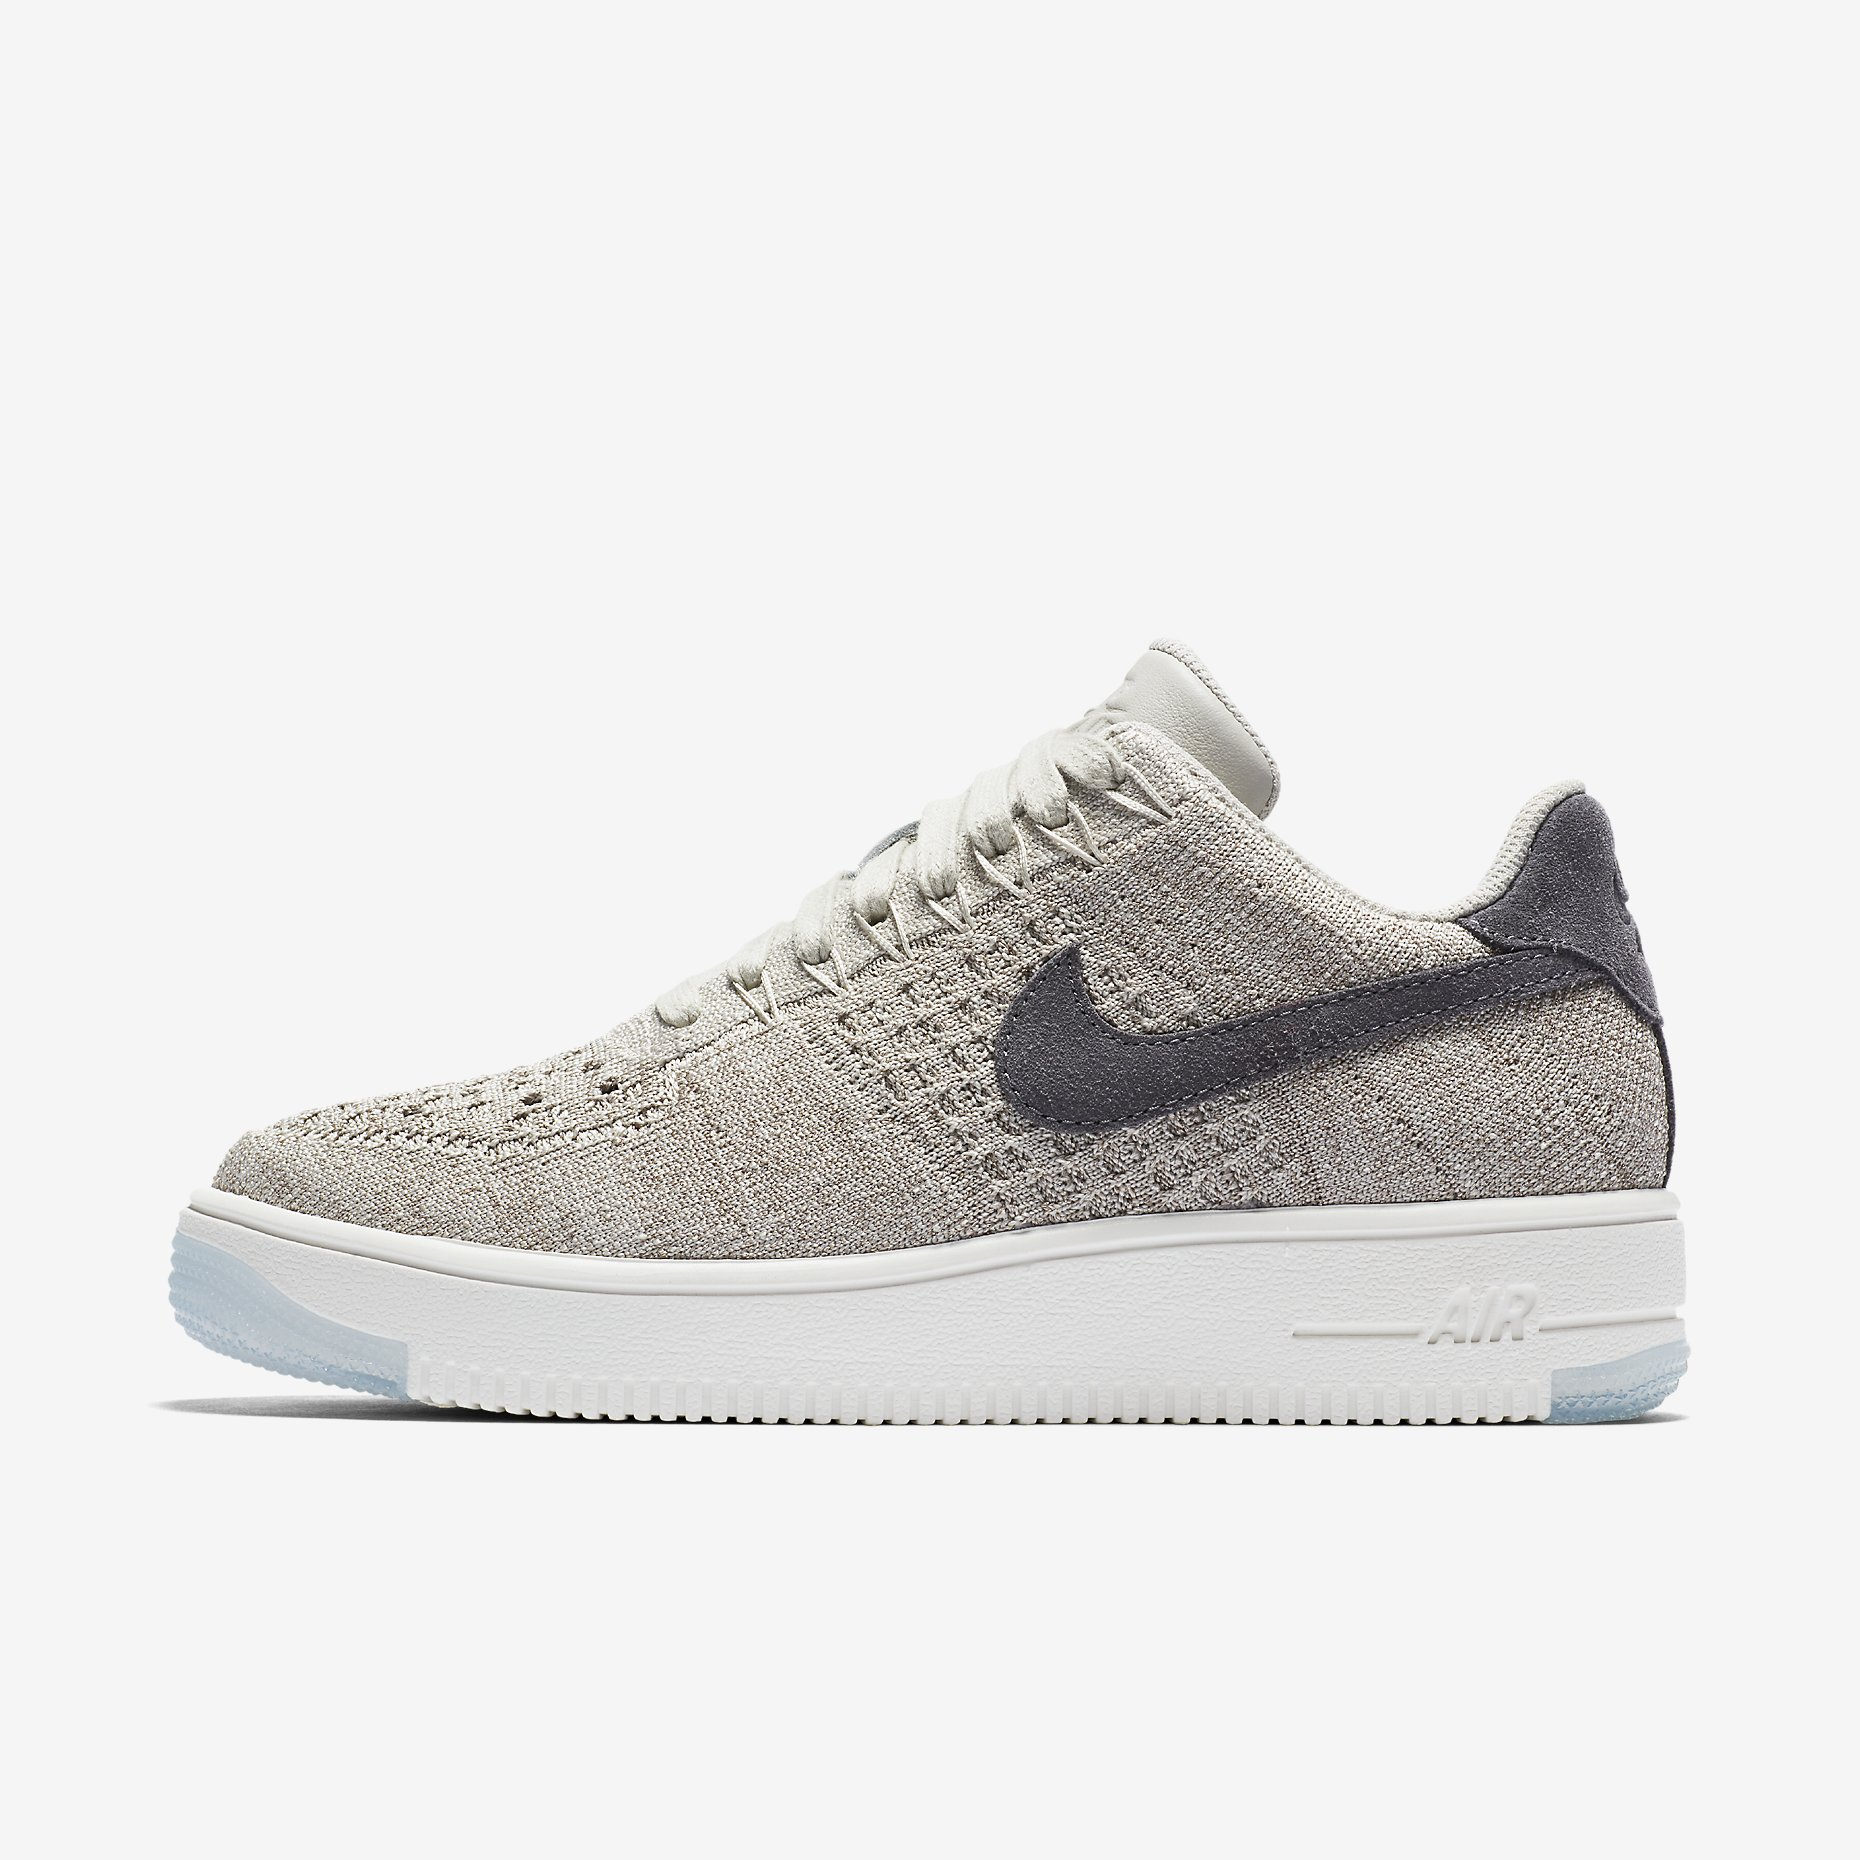 6ae8c9b669e2 Air Force 1 Flyknit Low – Sneakerhead